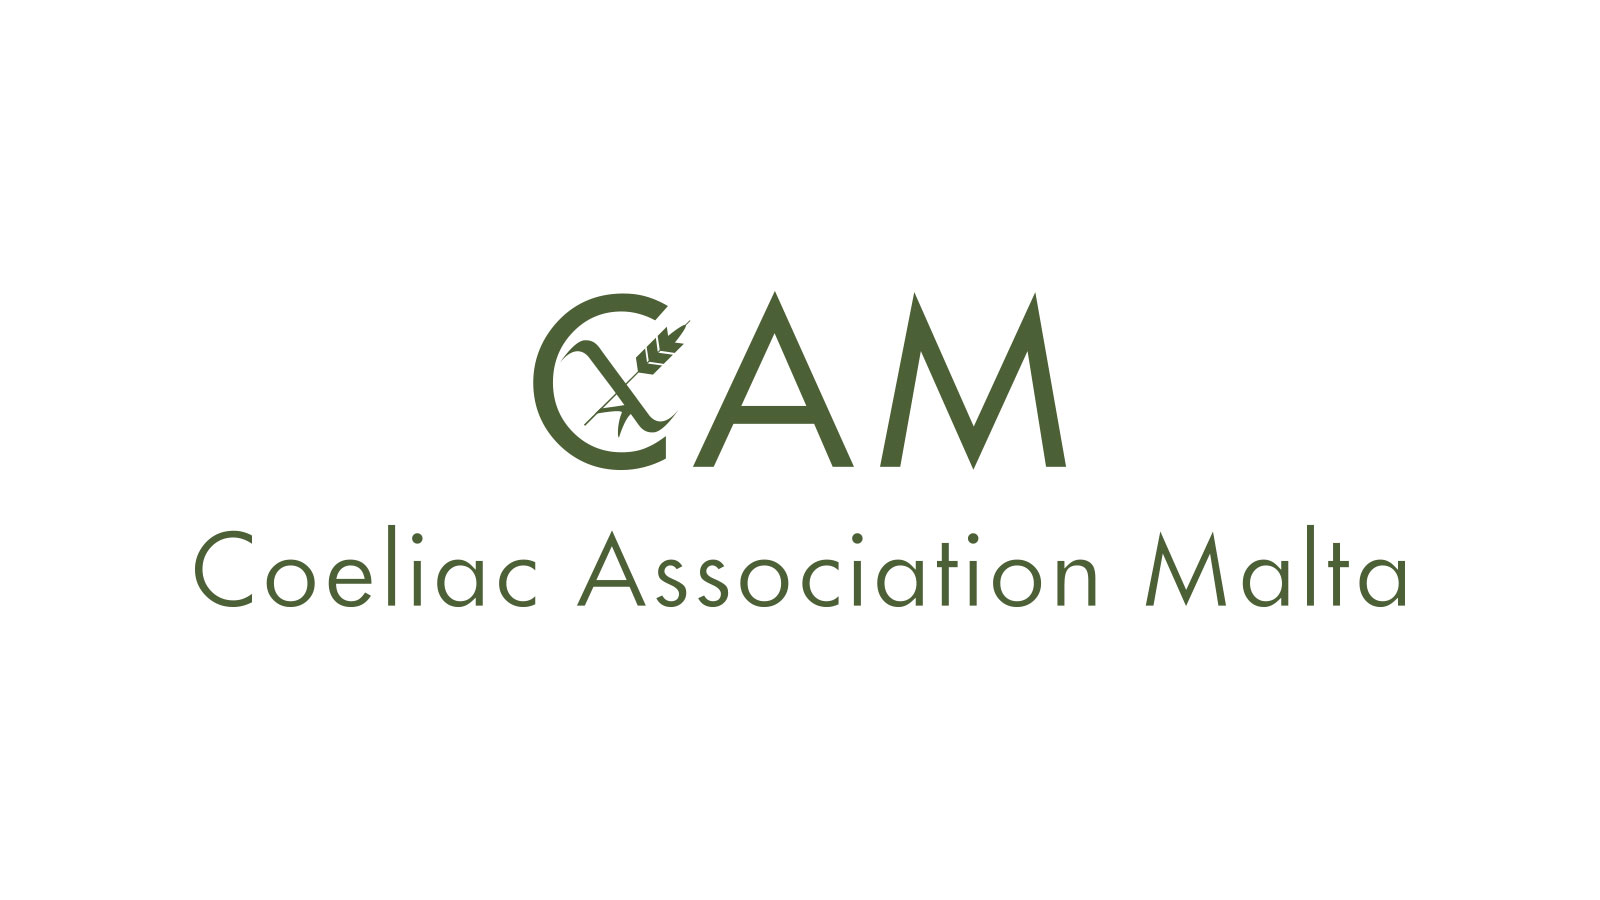 Statement issued by the Coeliac Association - Malta